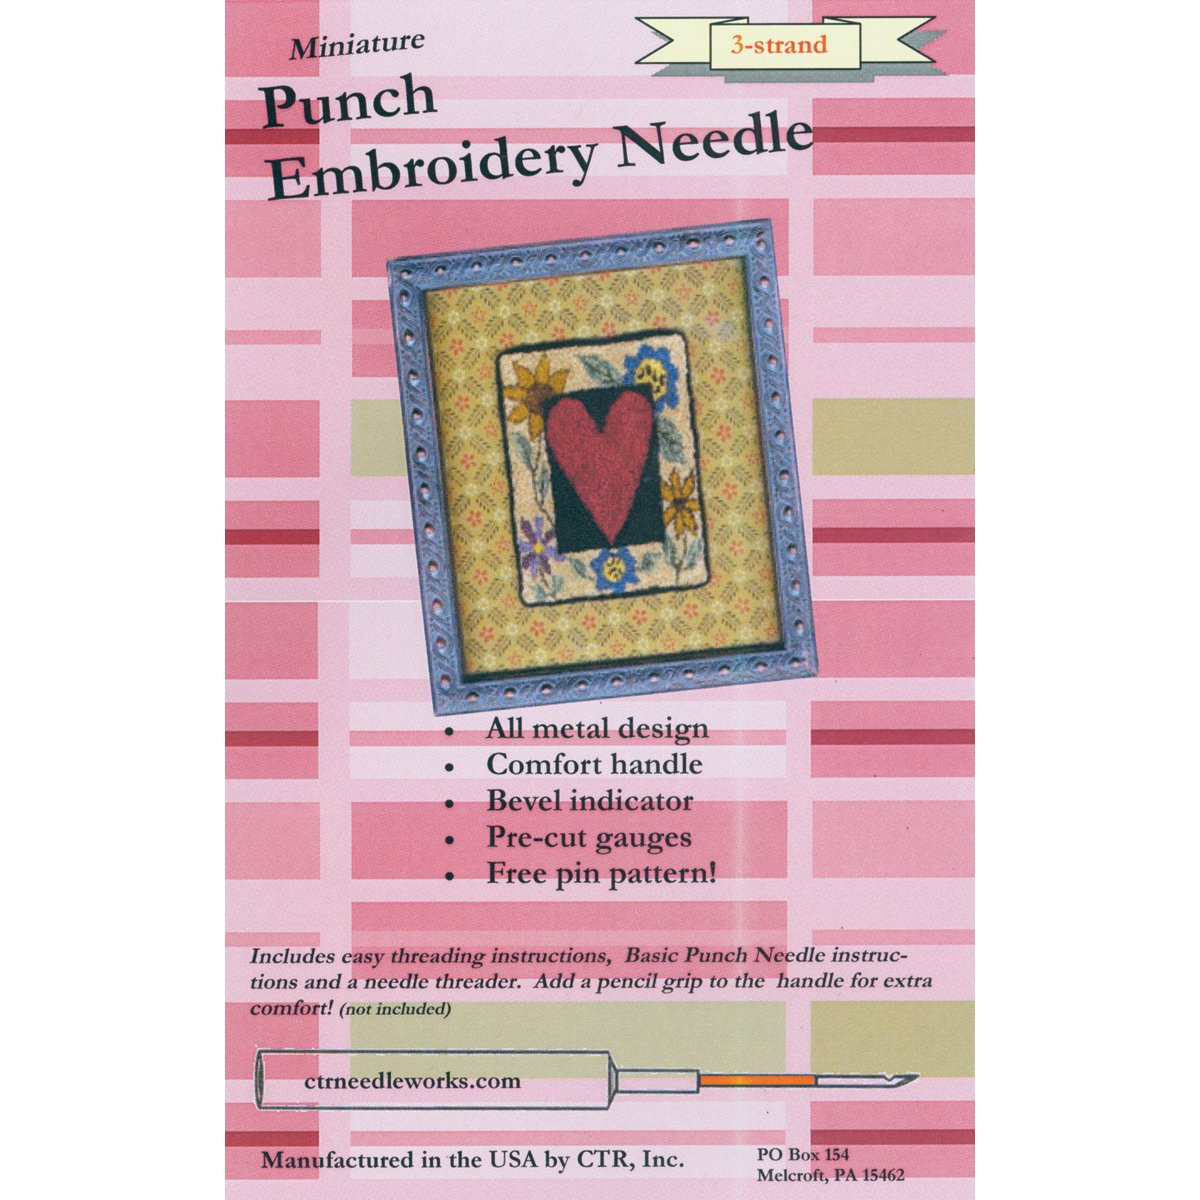 CTR Needleworks Miniature Punch Embroidery Needle-Red 3-Strand 27101946